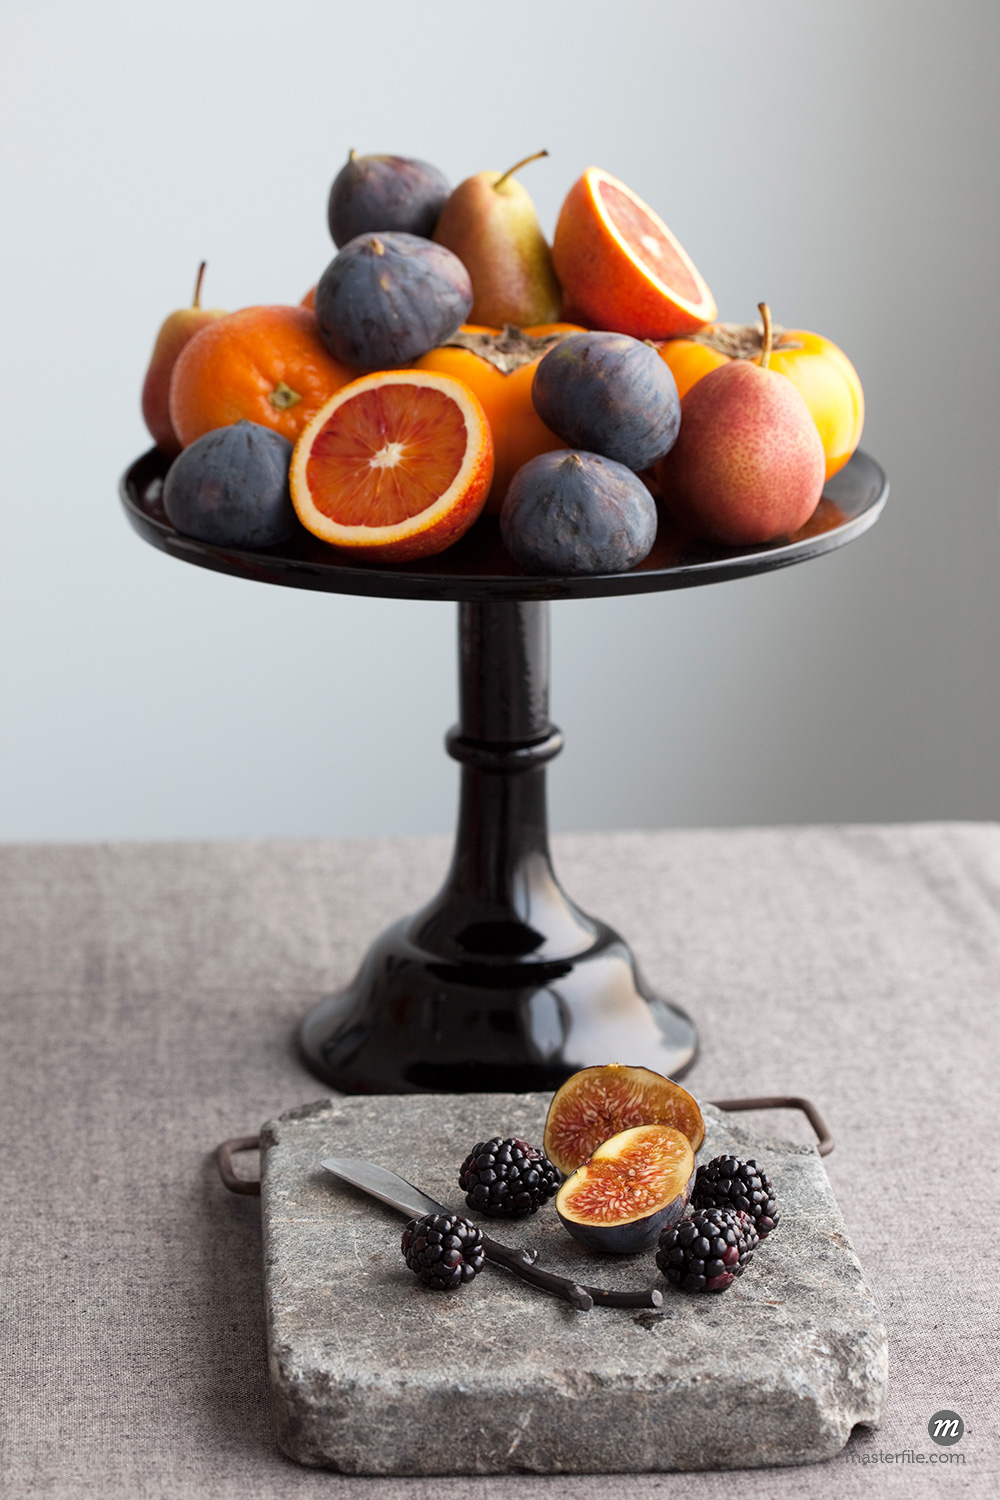 Fruit on Cake Stand and Cutting Stone © Susan Findlay / Masterfile